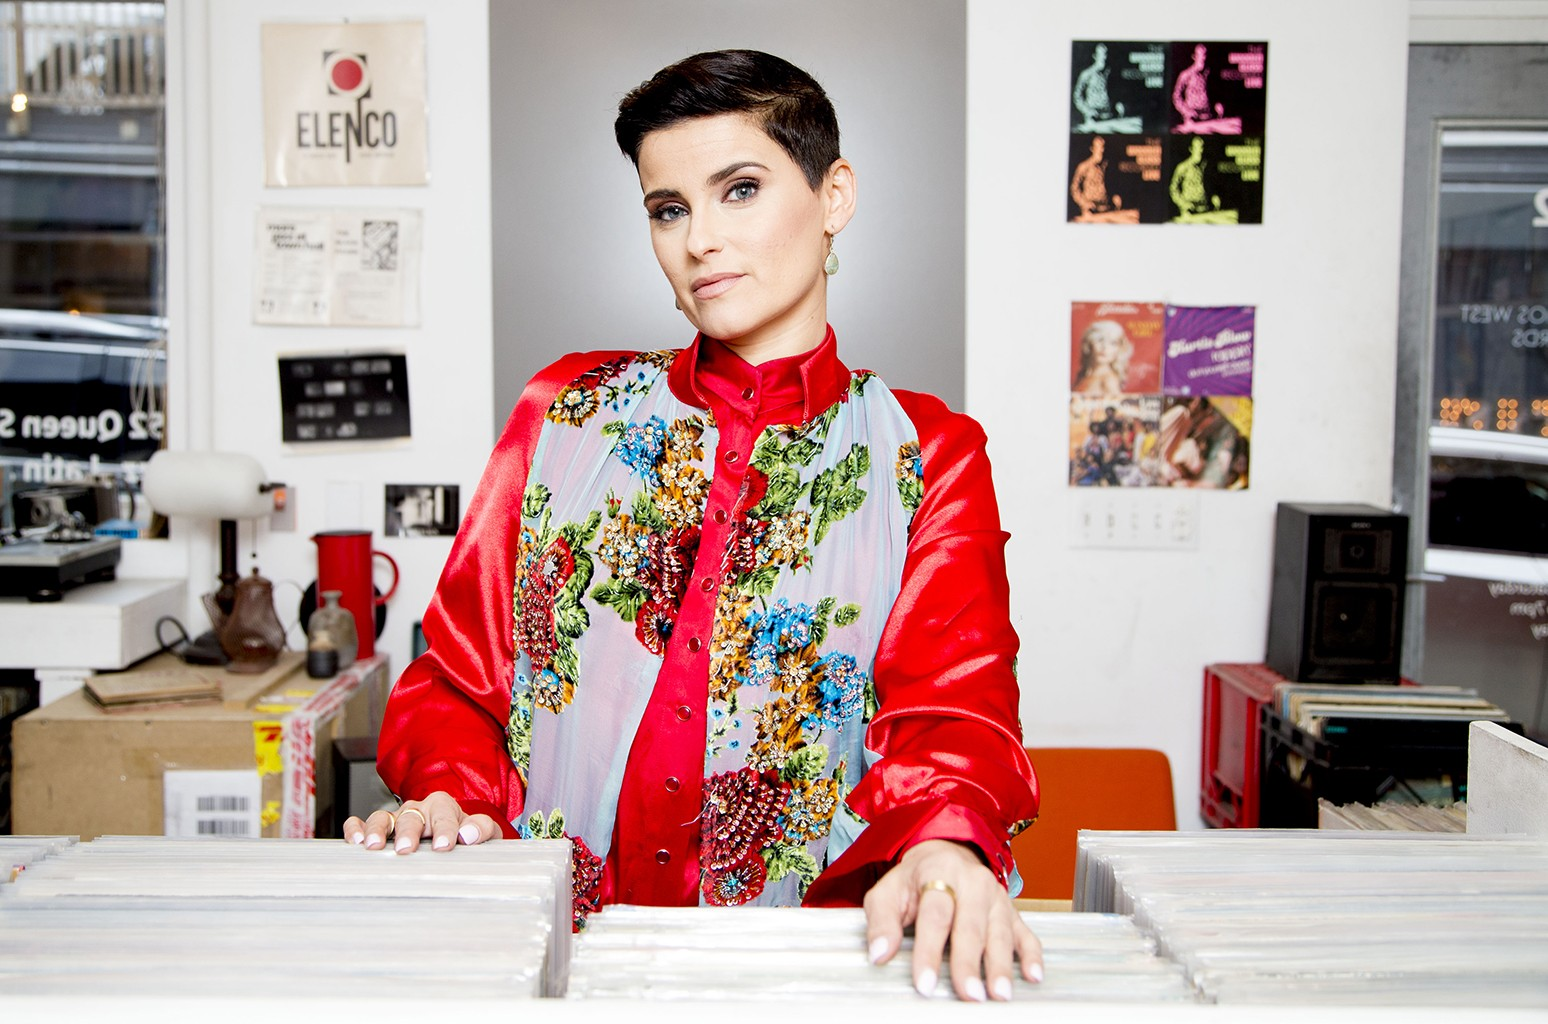 Nelly Furtado photographed at Cosmic Records.